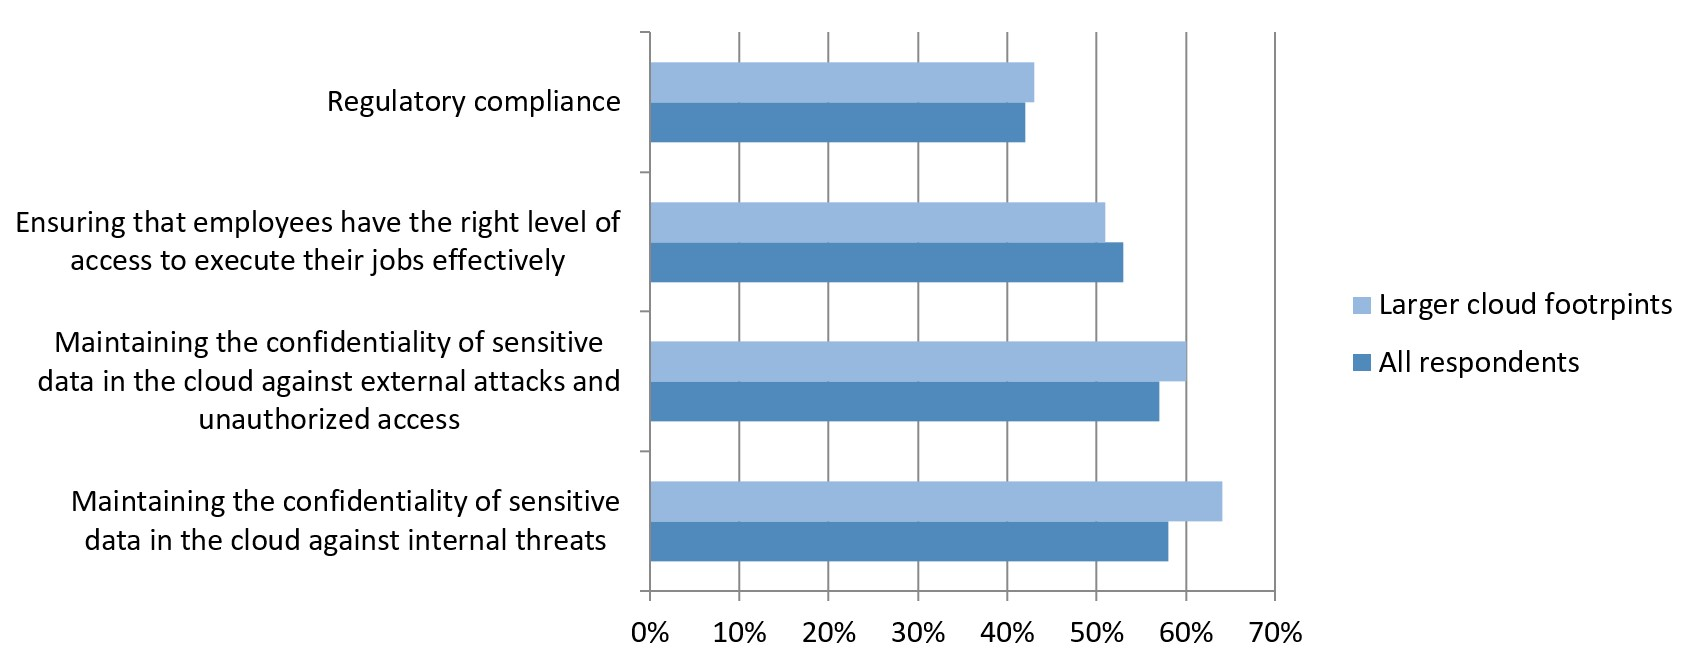 Figure 5 - Top Drivers for Governing Cloud Infrastructure Access Permissions